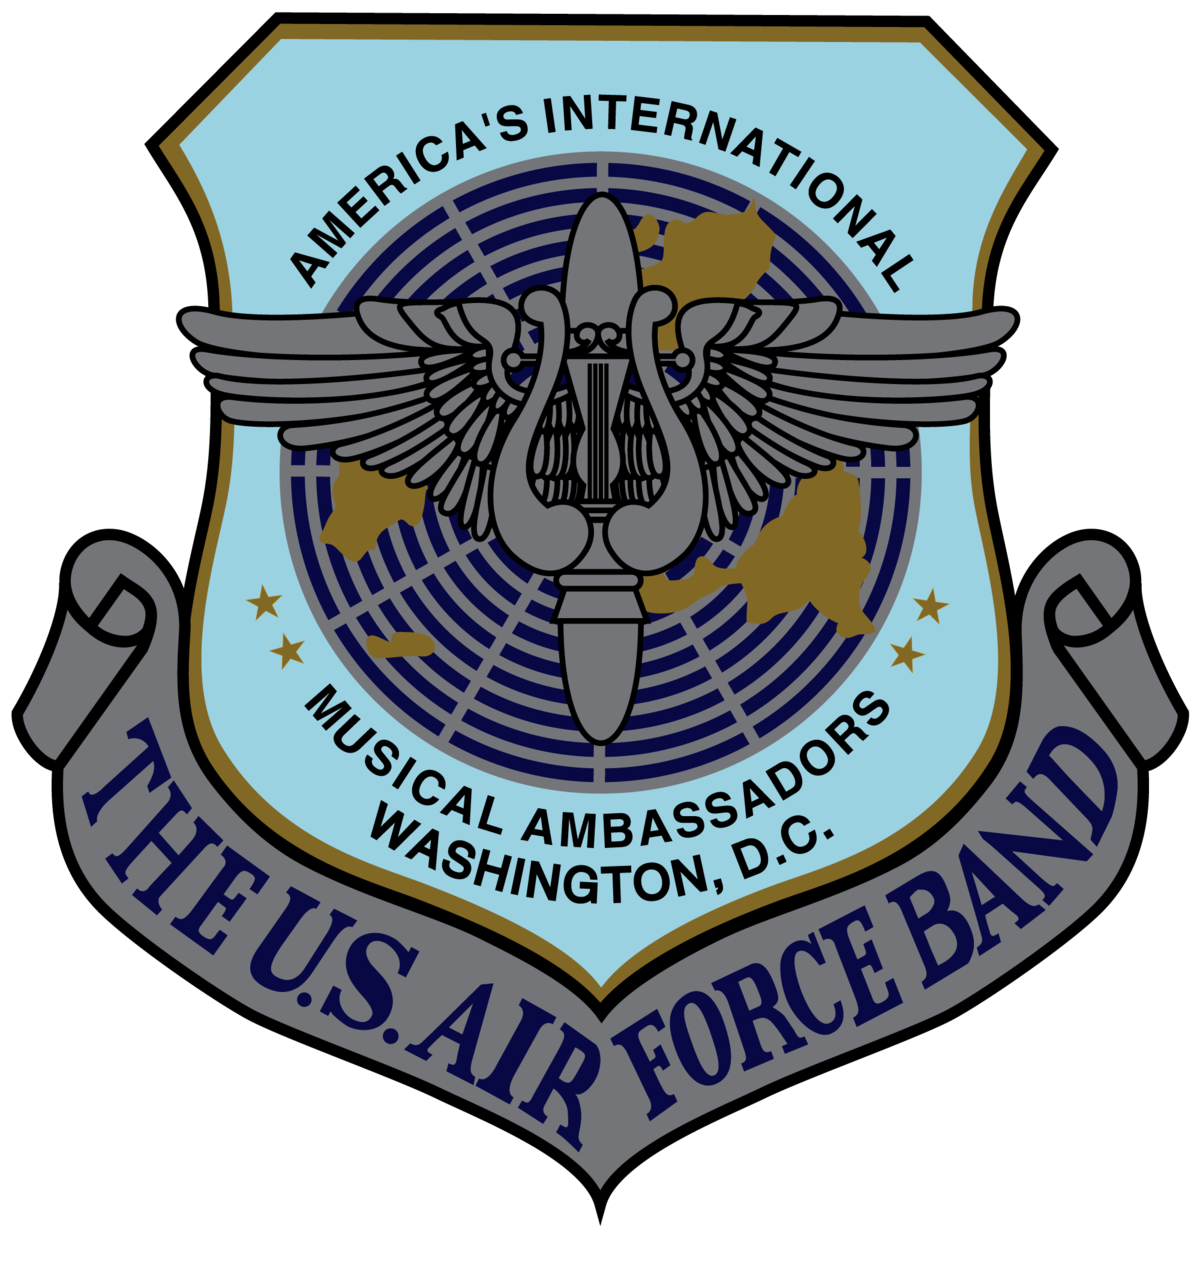 Air force star clipart banner black and white download United States Air Force Band - Wikipedia banner black and white download